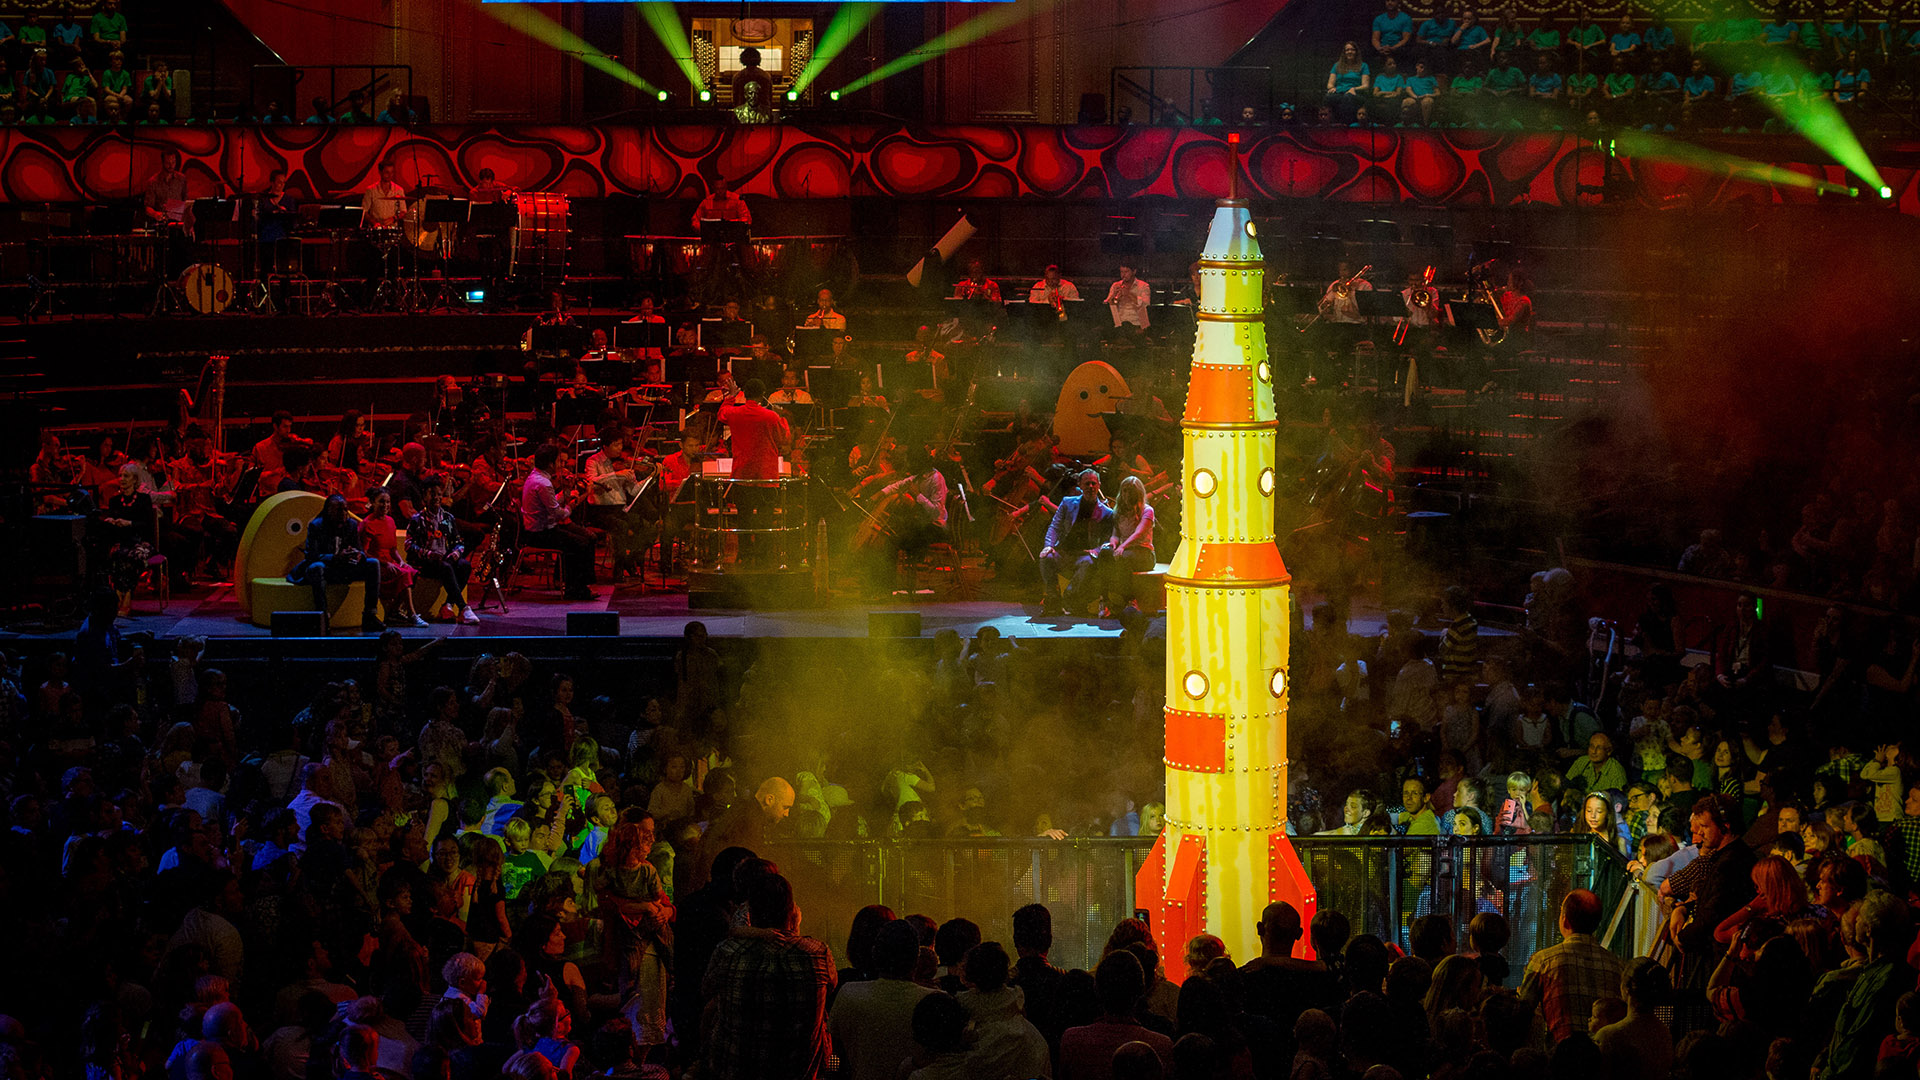 Rocket taking off at the Cbeebies Prom 2019